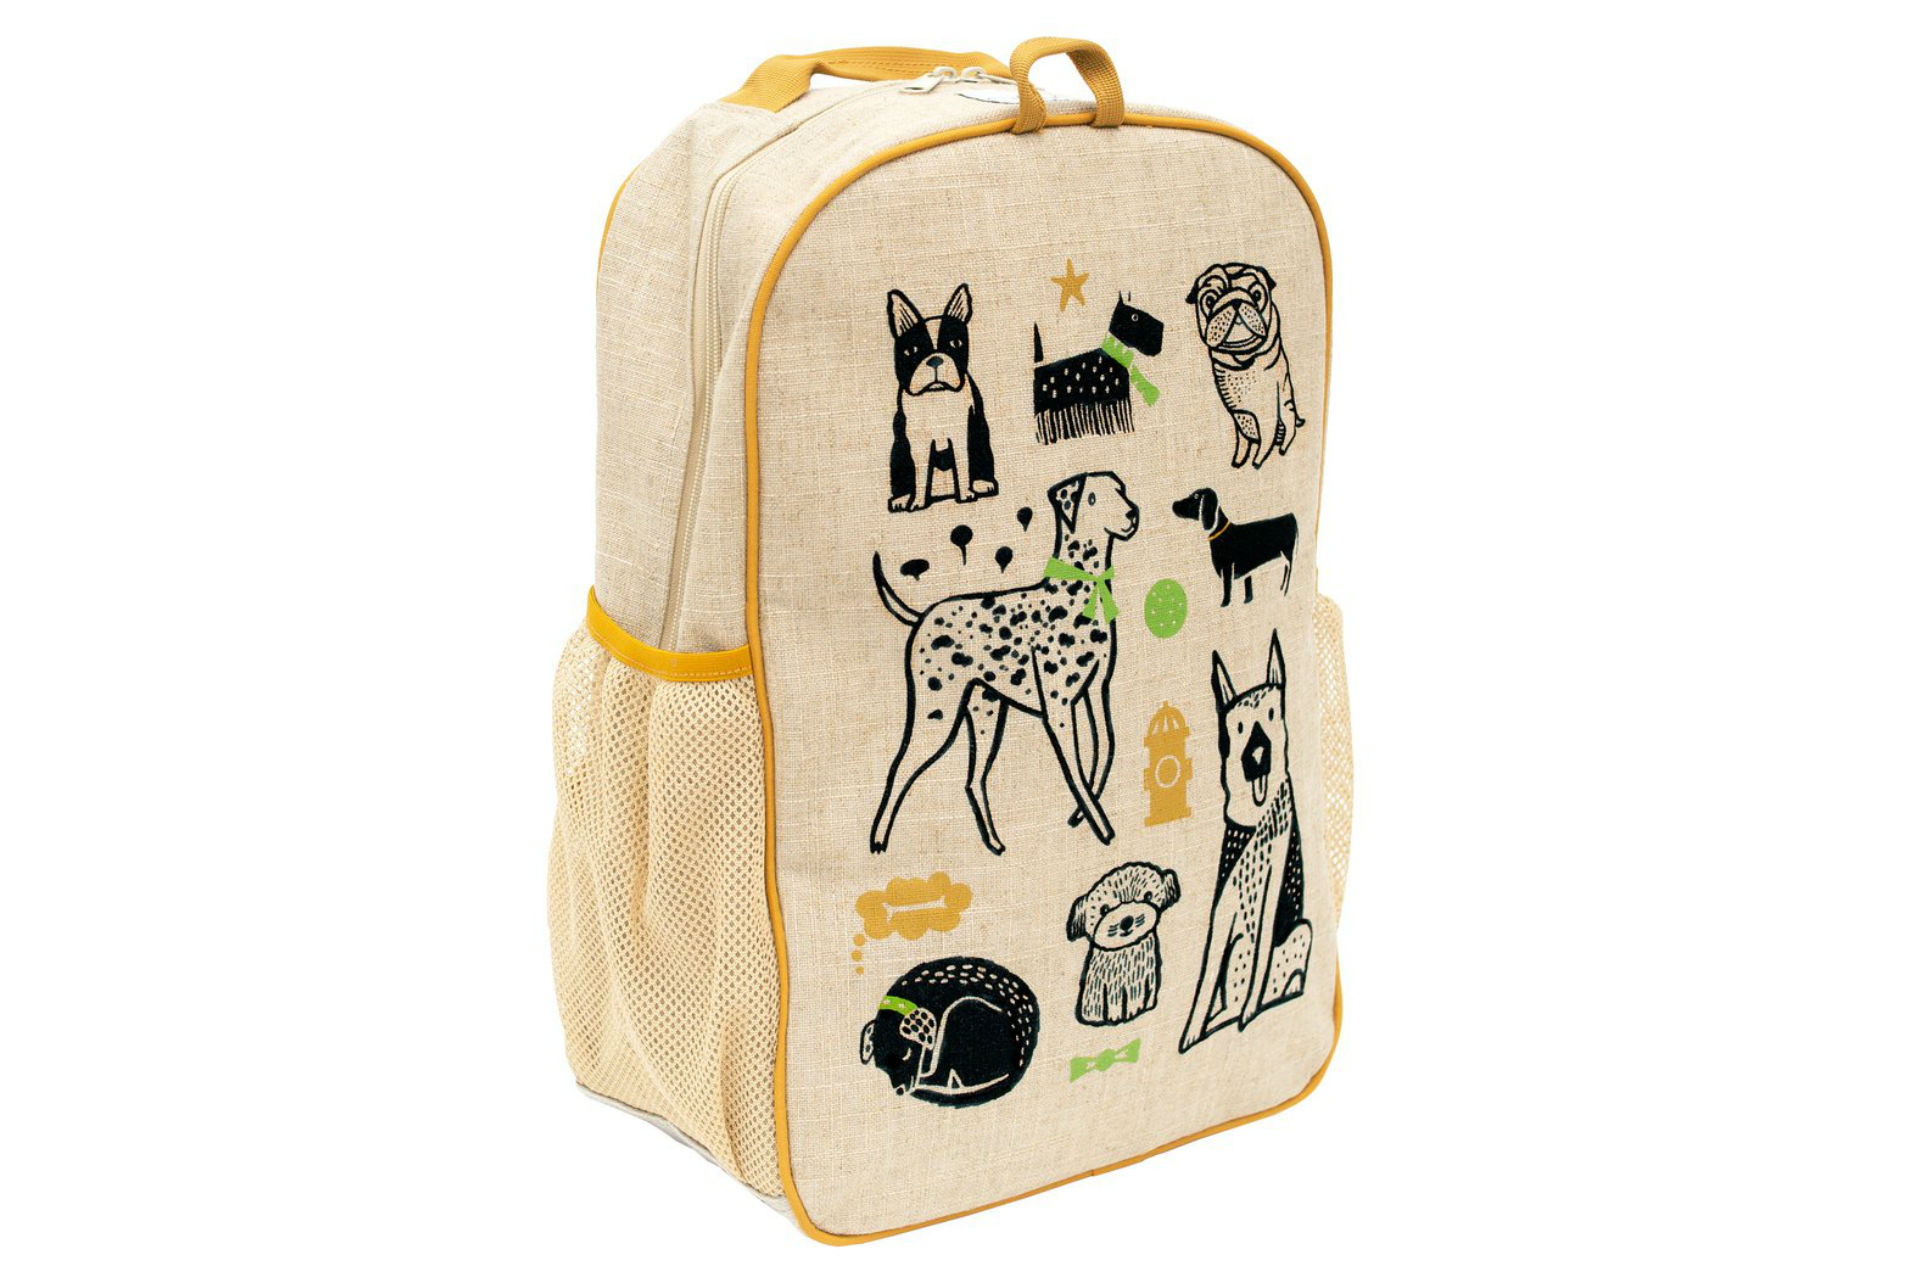 linen backpack with dogs printed on it